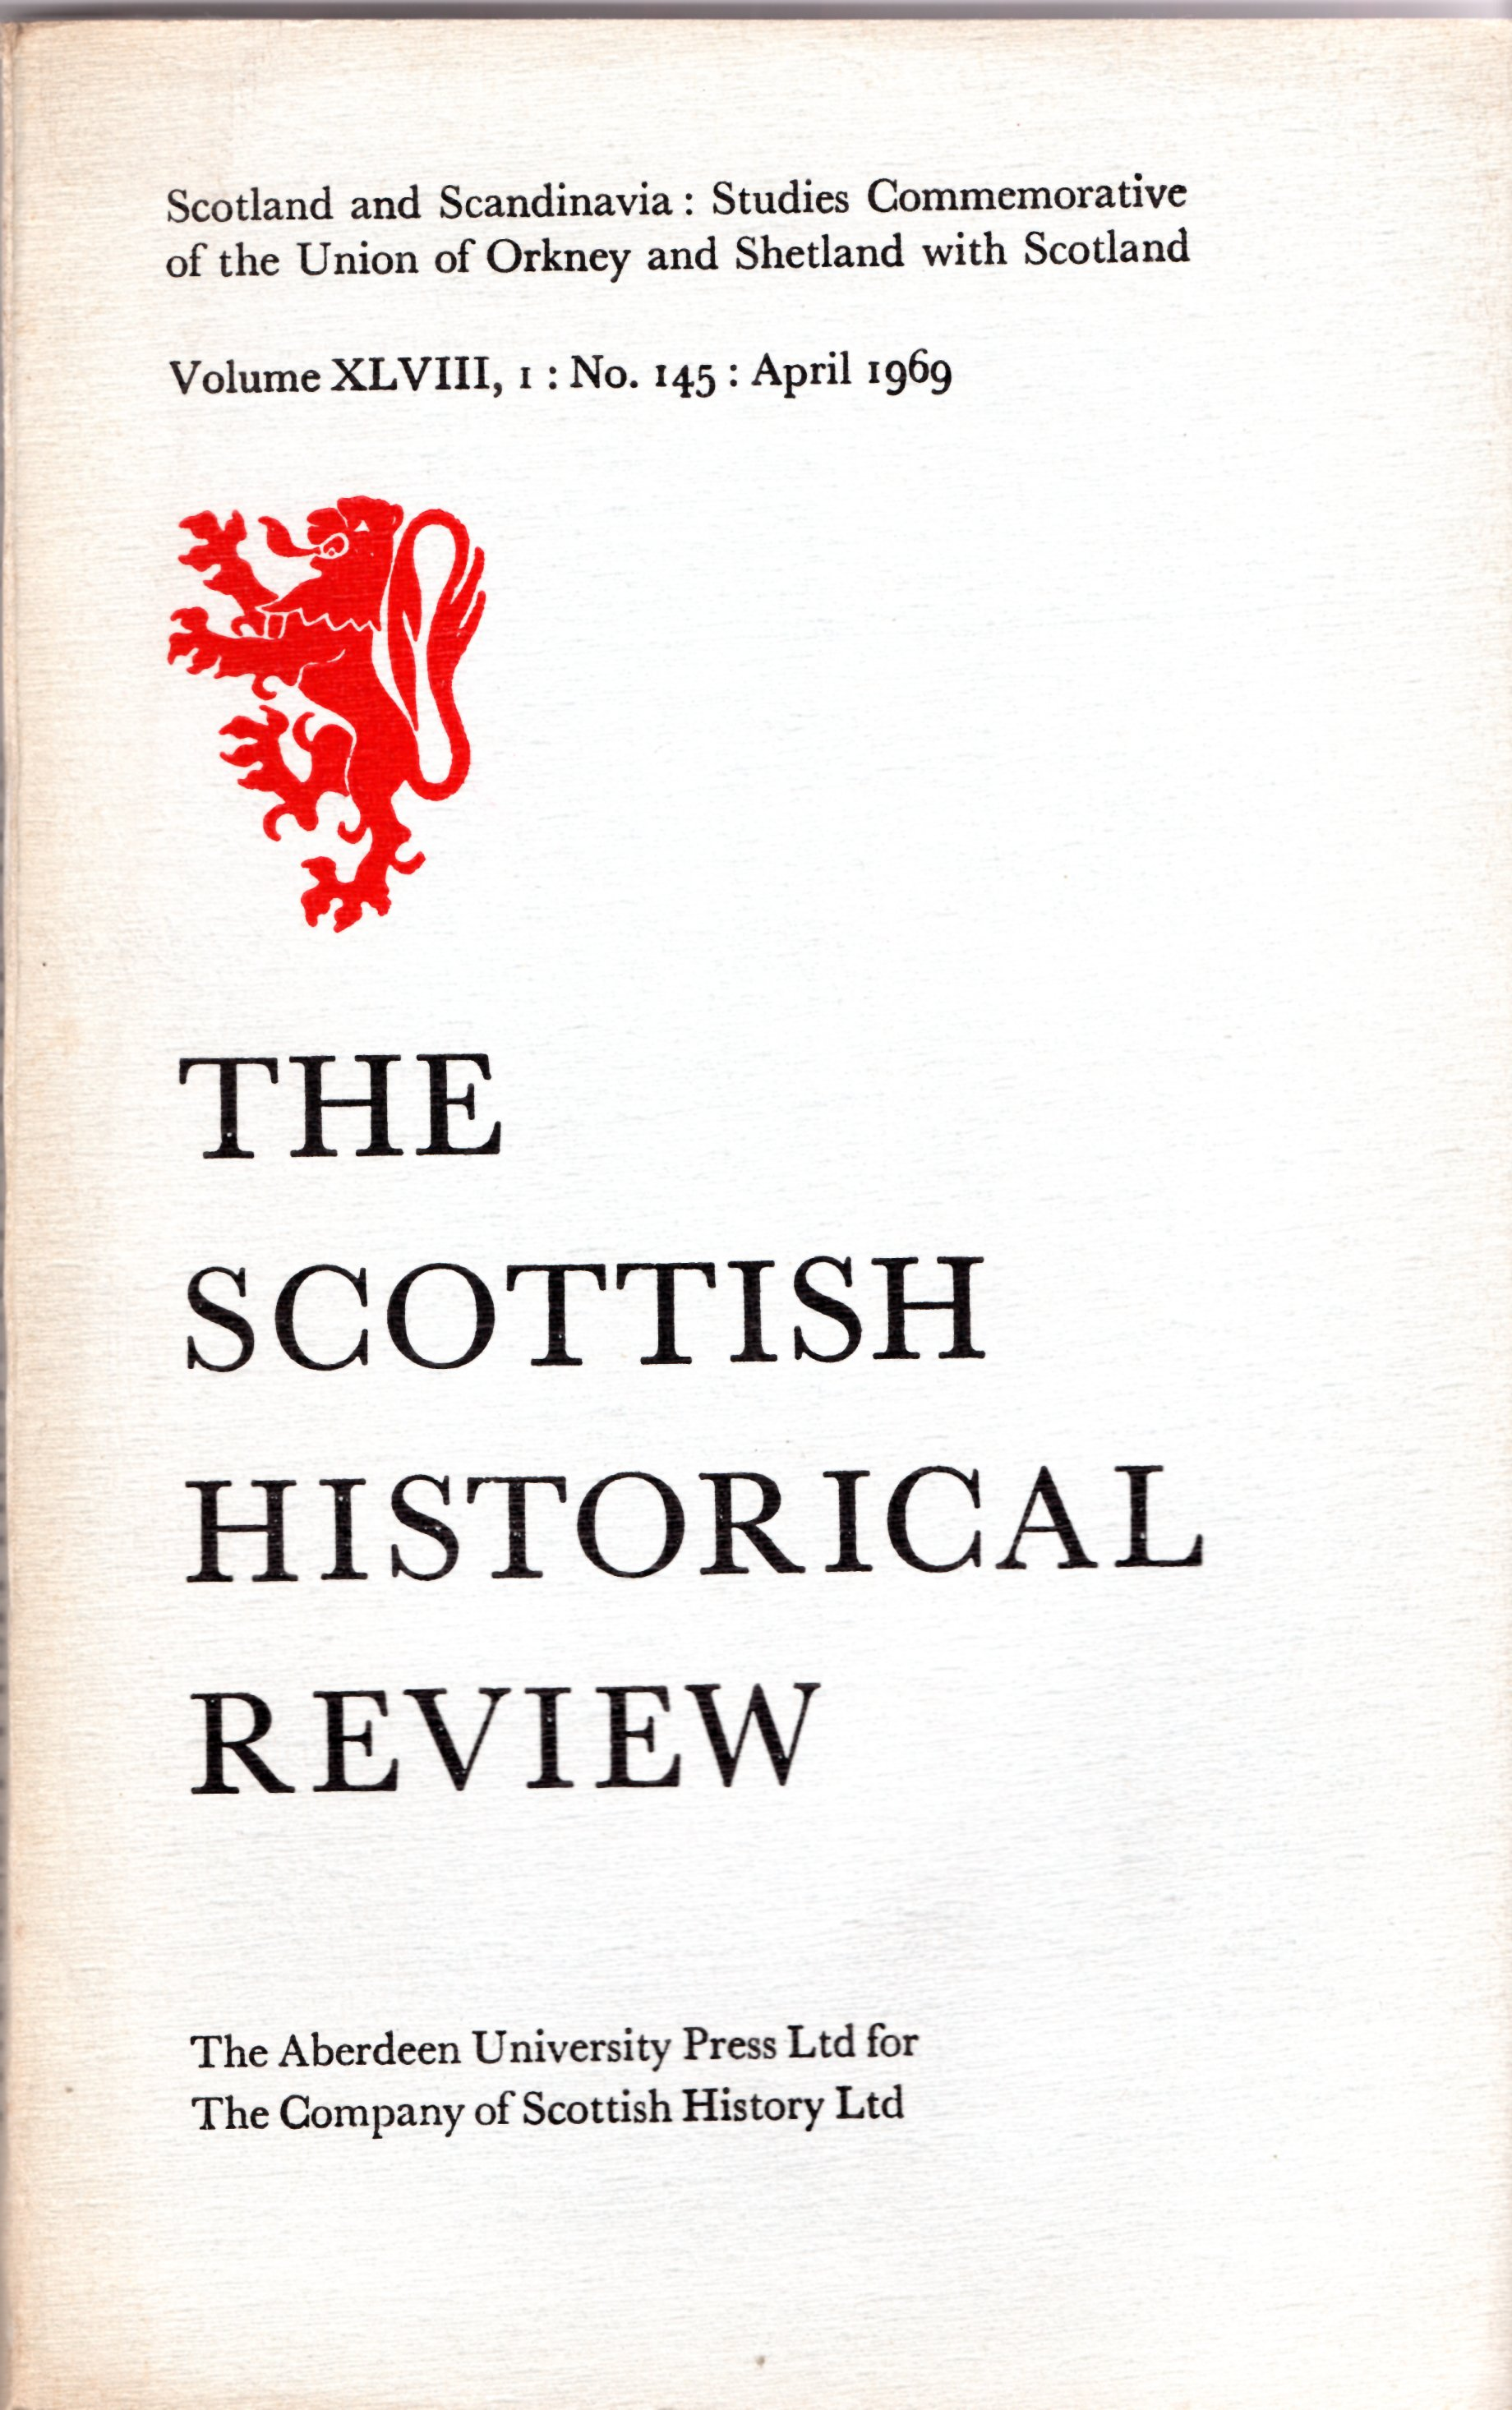 Image for The Scottish Historical Review Volume XLVIII, I: No. 145: April 1969